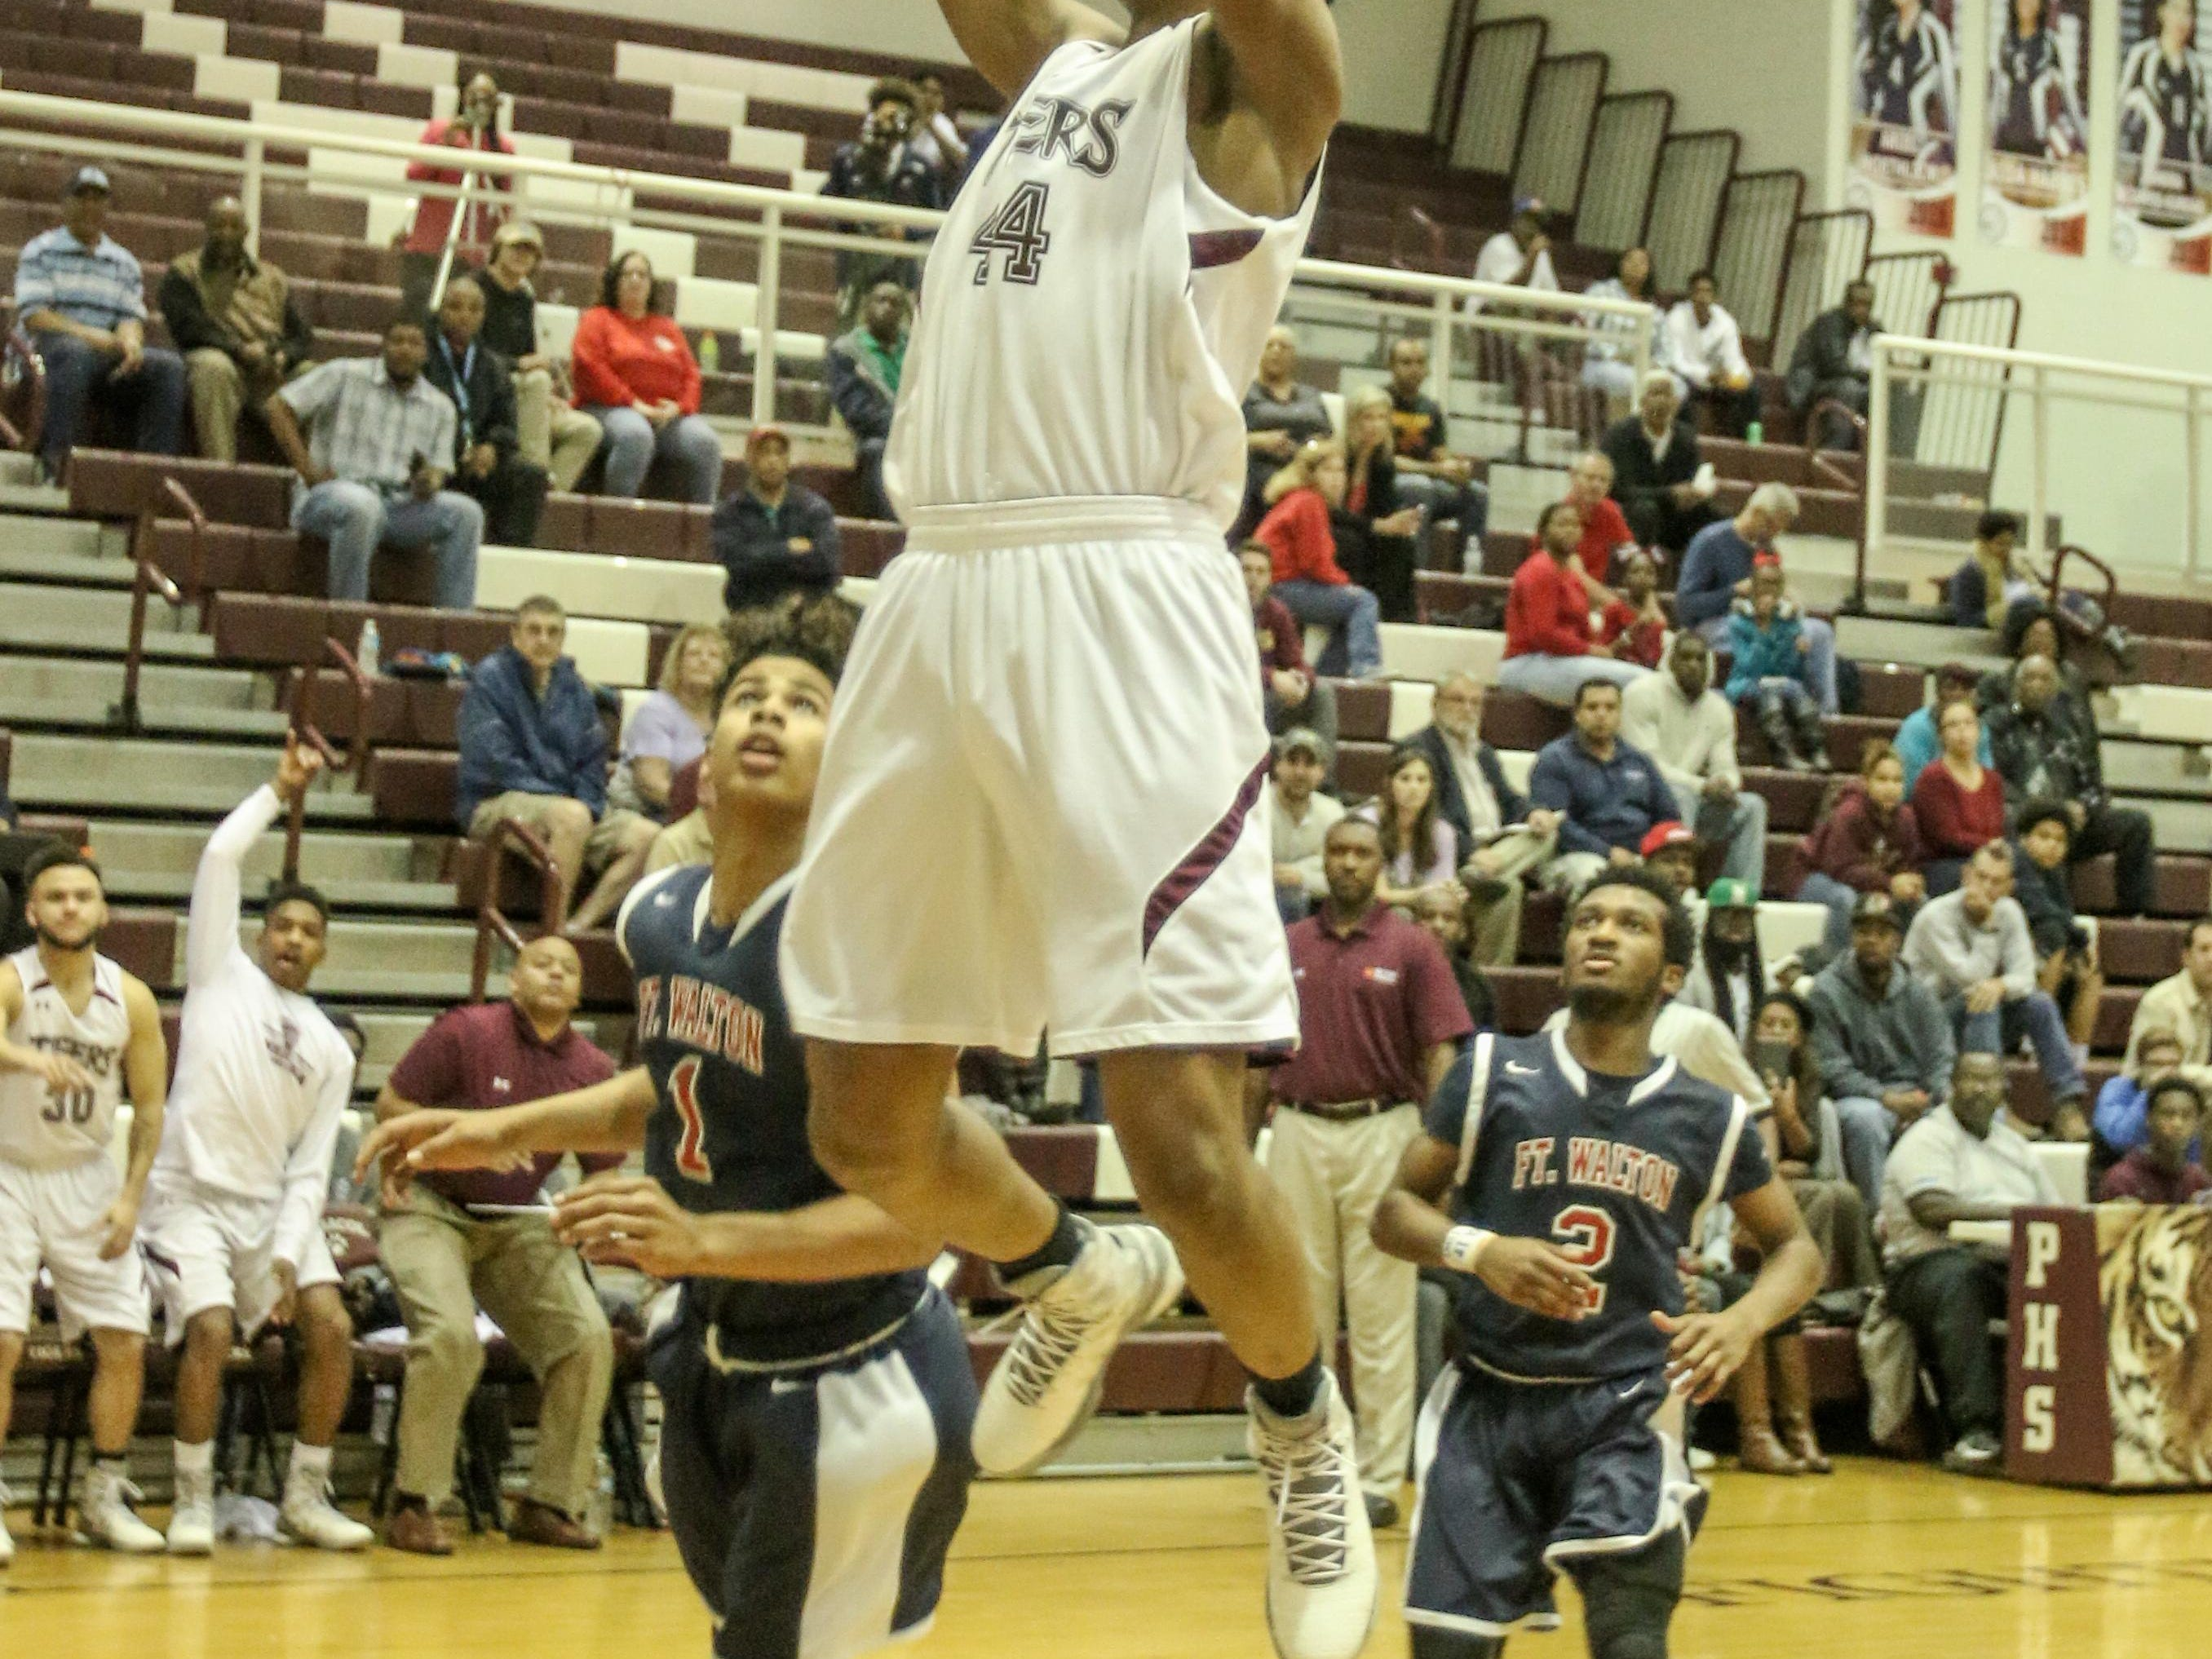 Pensacola High's Davonchae Bryant slams down a dunk during the District 1-6A quarterfinal playoff game Thursday night at Pensacola High School.